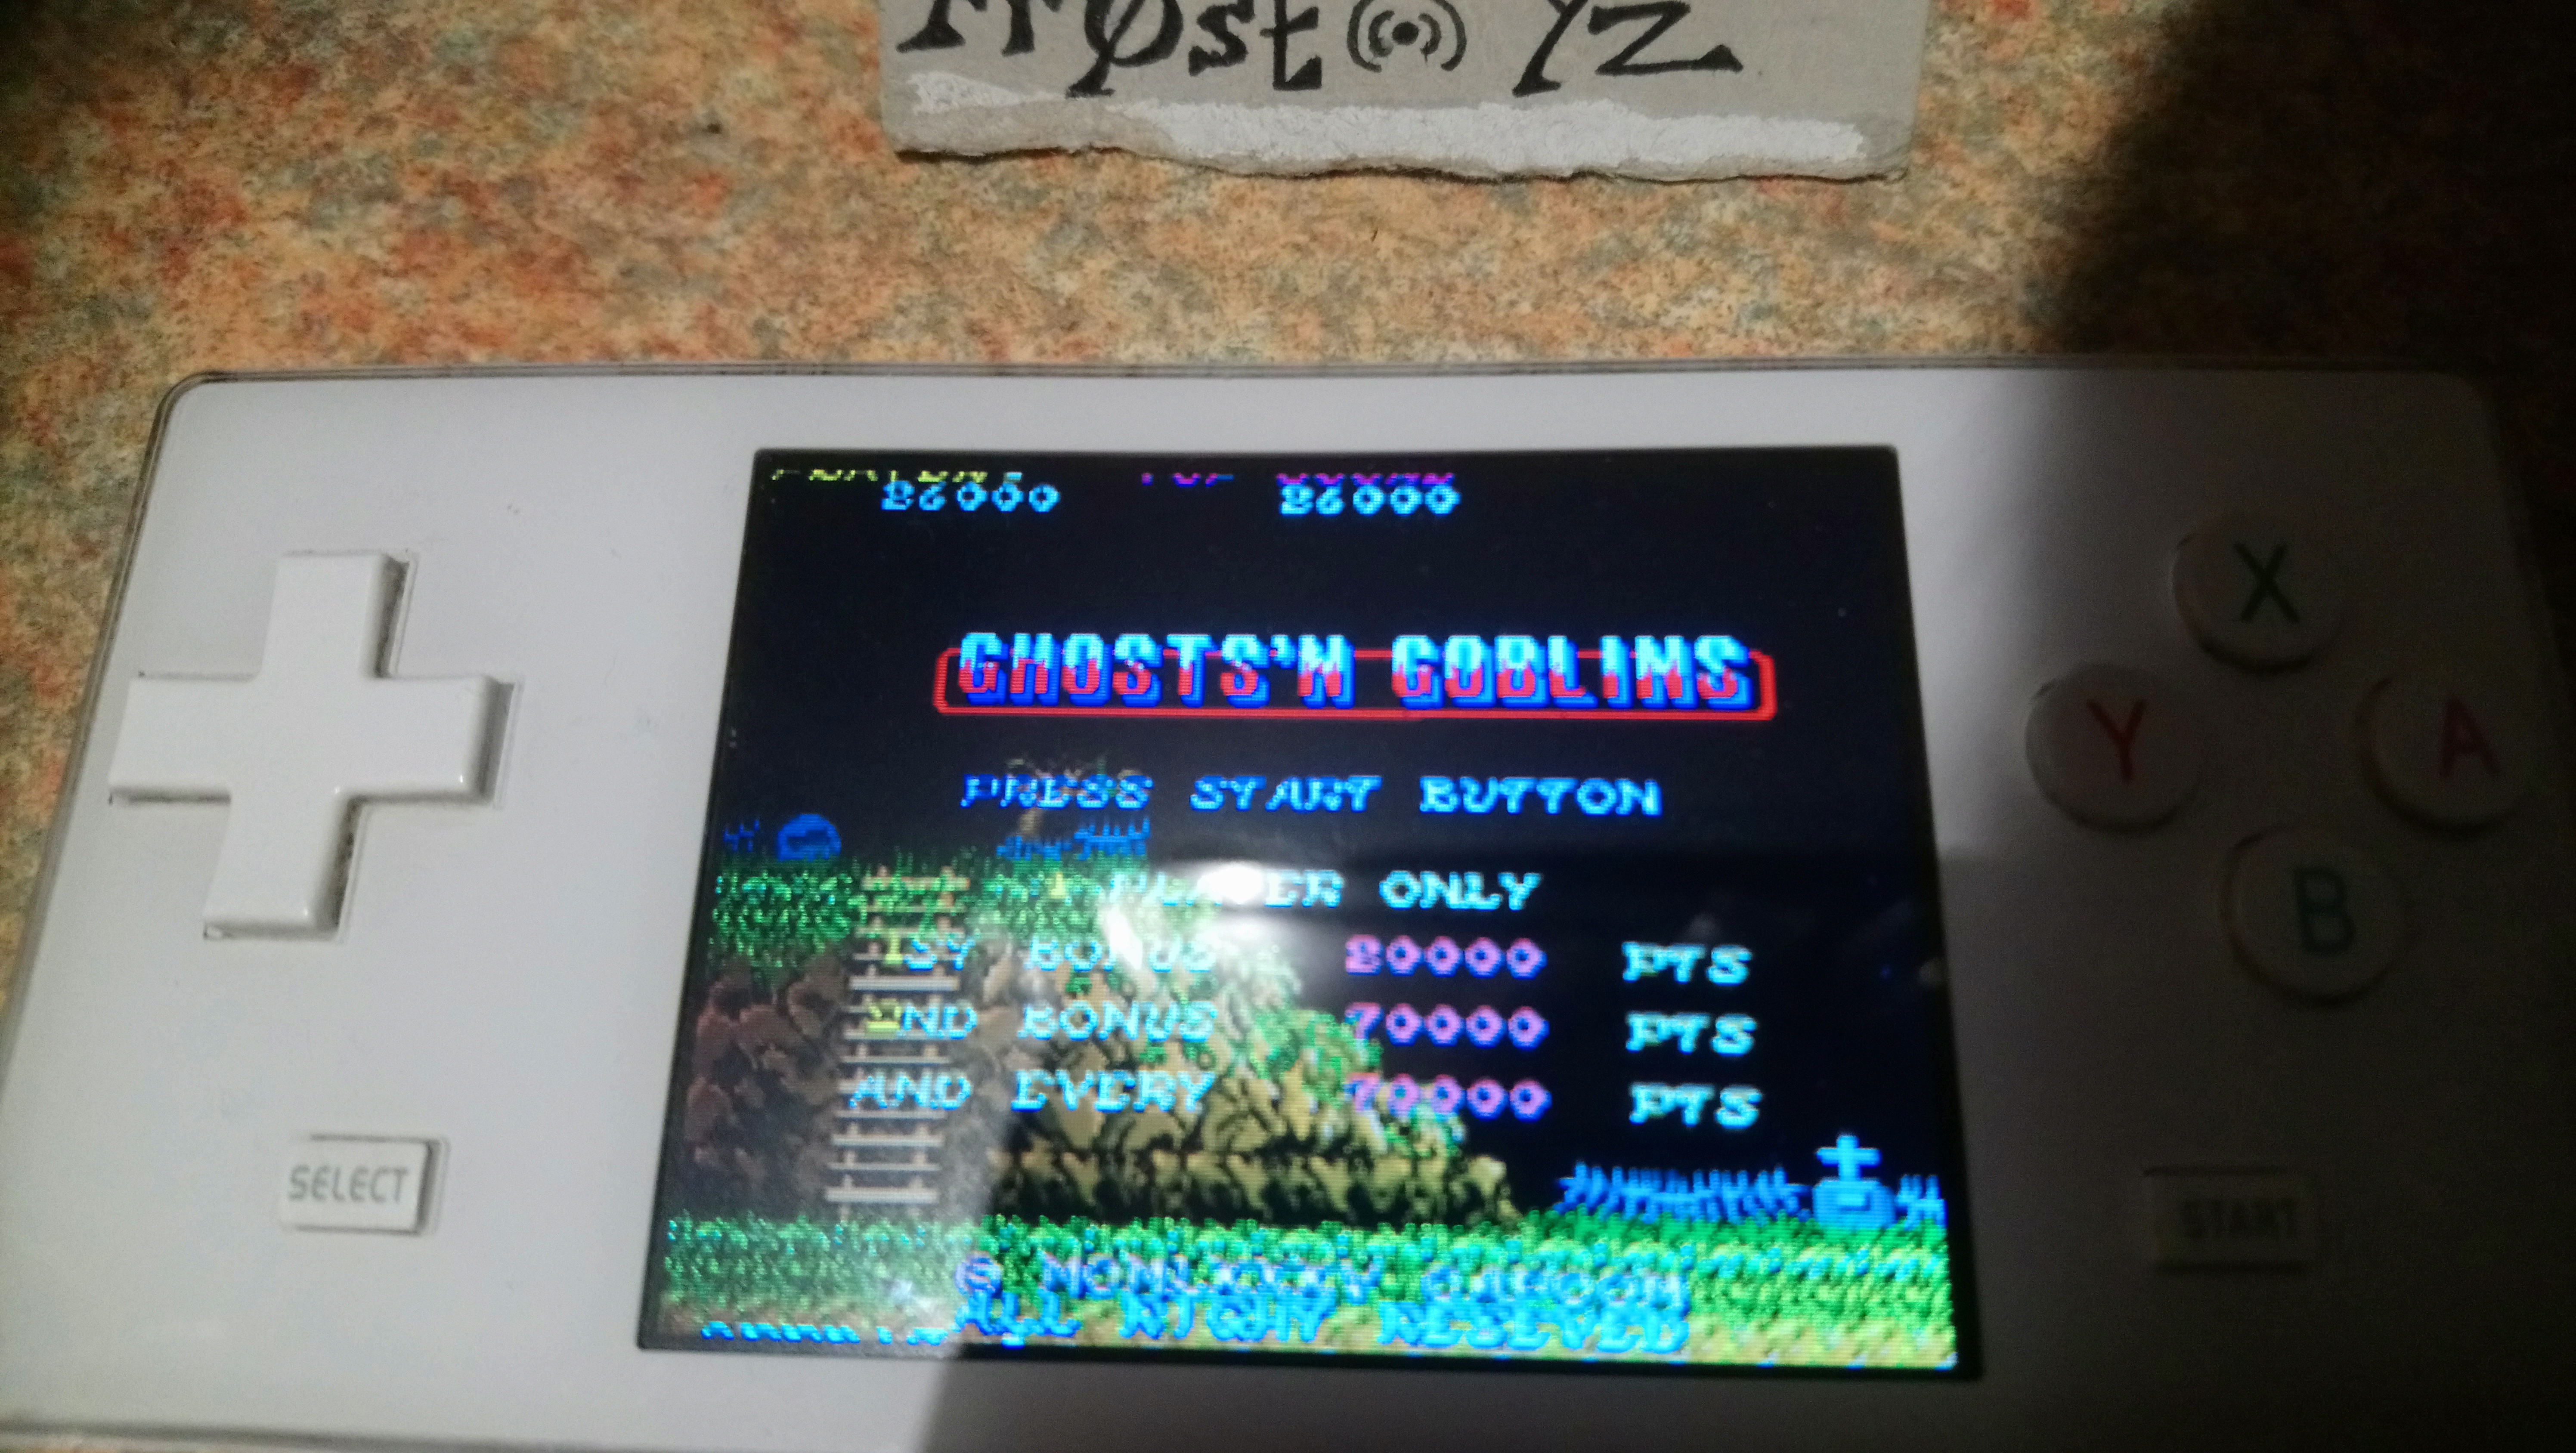 Ghosts N Goblins 26,000 points